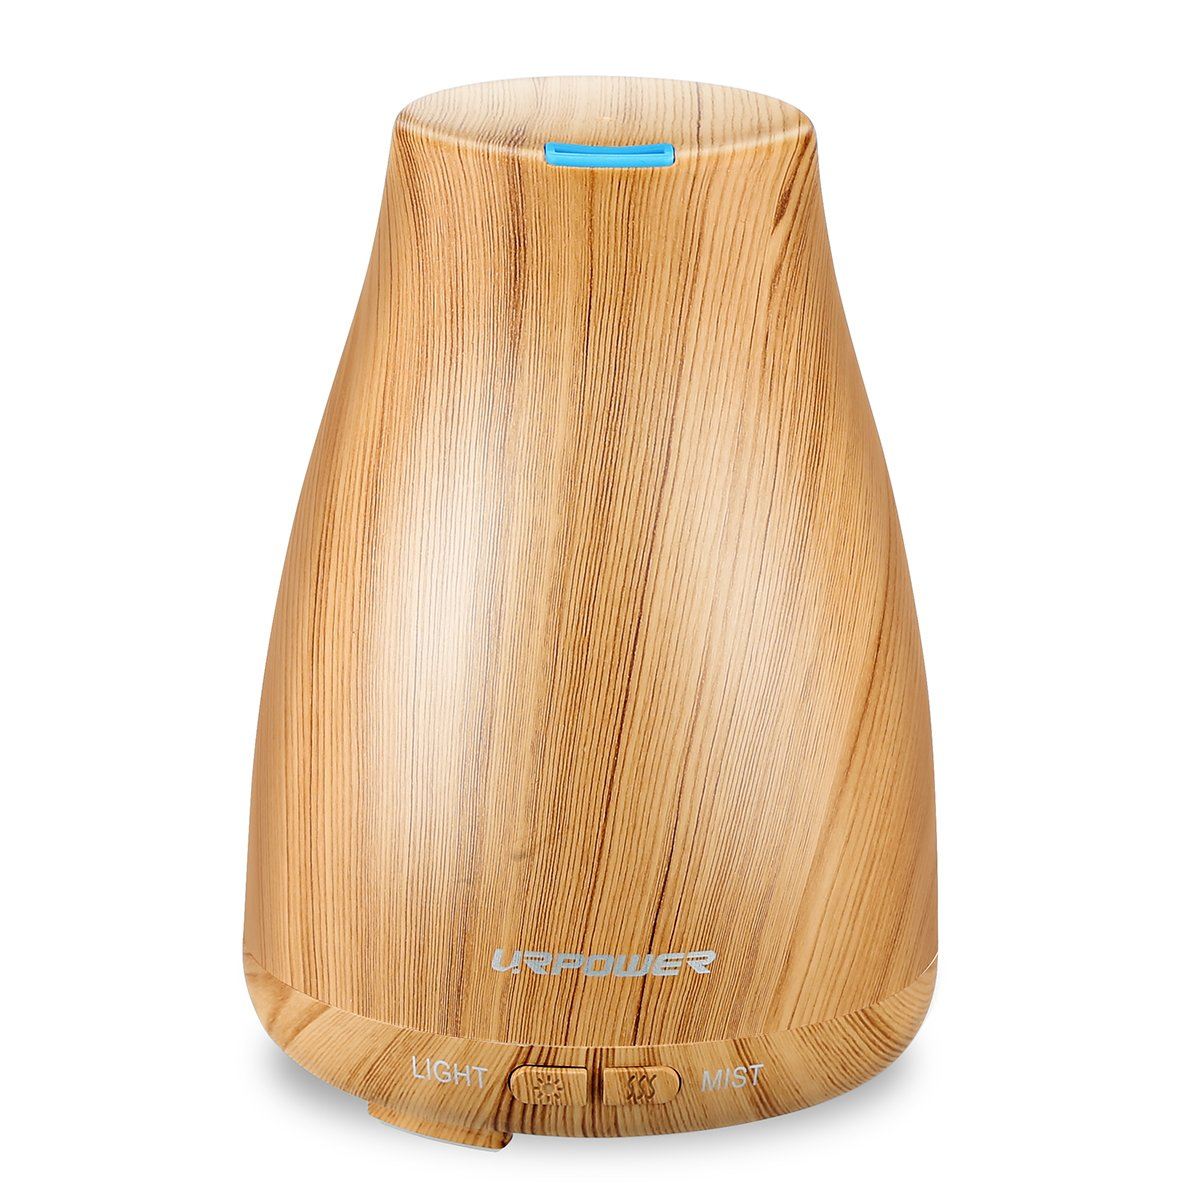 URPOWER 2nd Version Essential Oil Diffuser Aroma Essential Oil Cool Mist Humidifier with Adjustable Mist Mode, Waterless Auto Shut-off and 7 Color LED Lights Changing for Home Office Baby